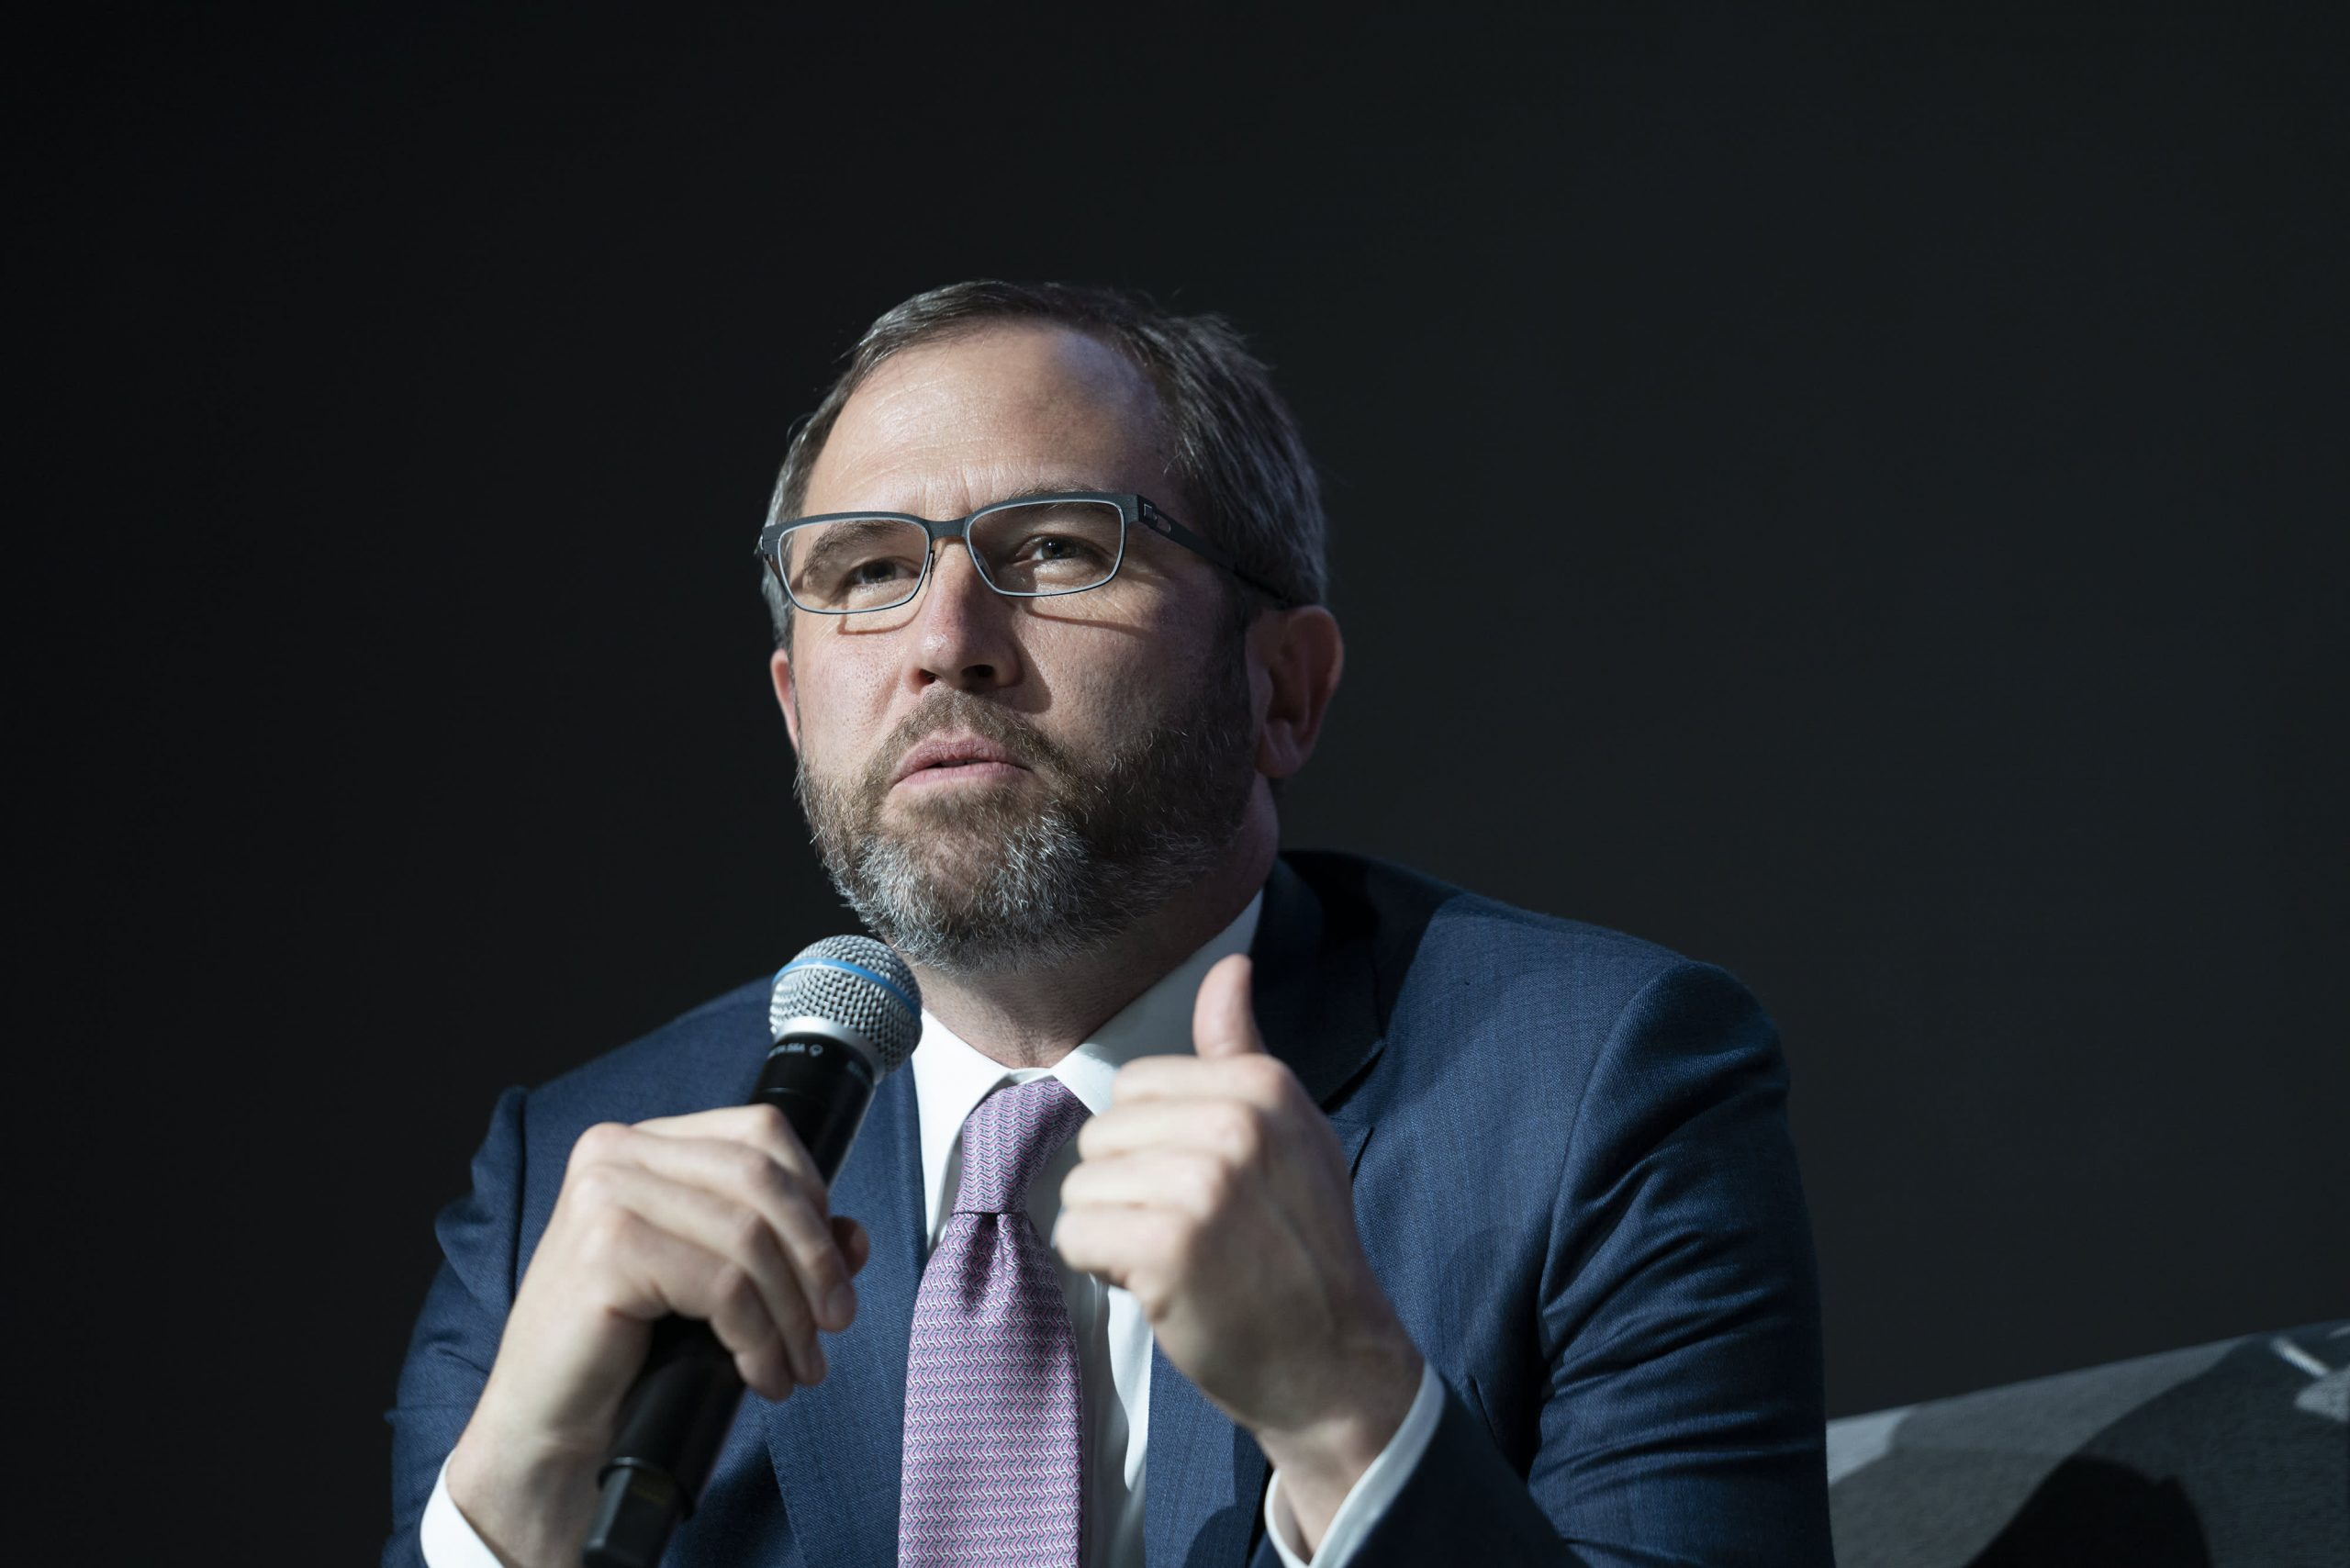 Ripple CEO says the U.S. lacks regulatory clarity on cryptocurrency